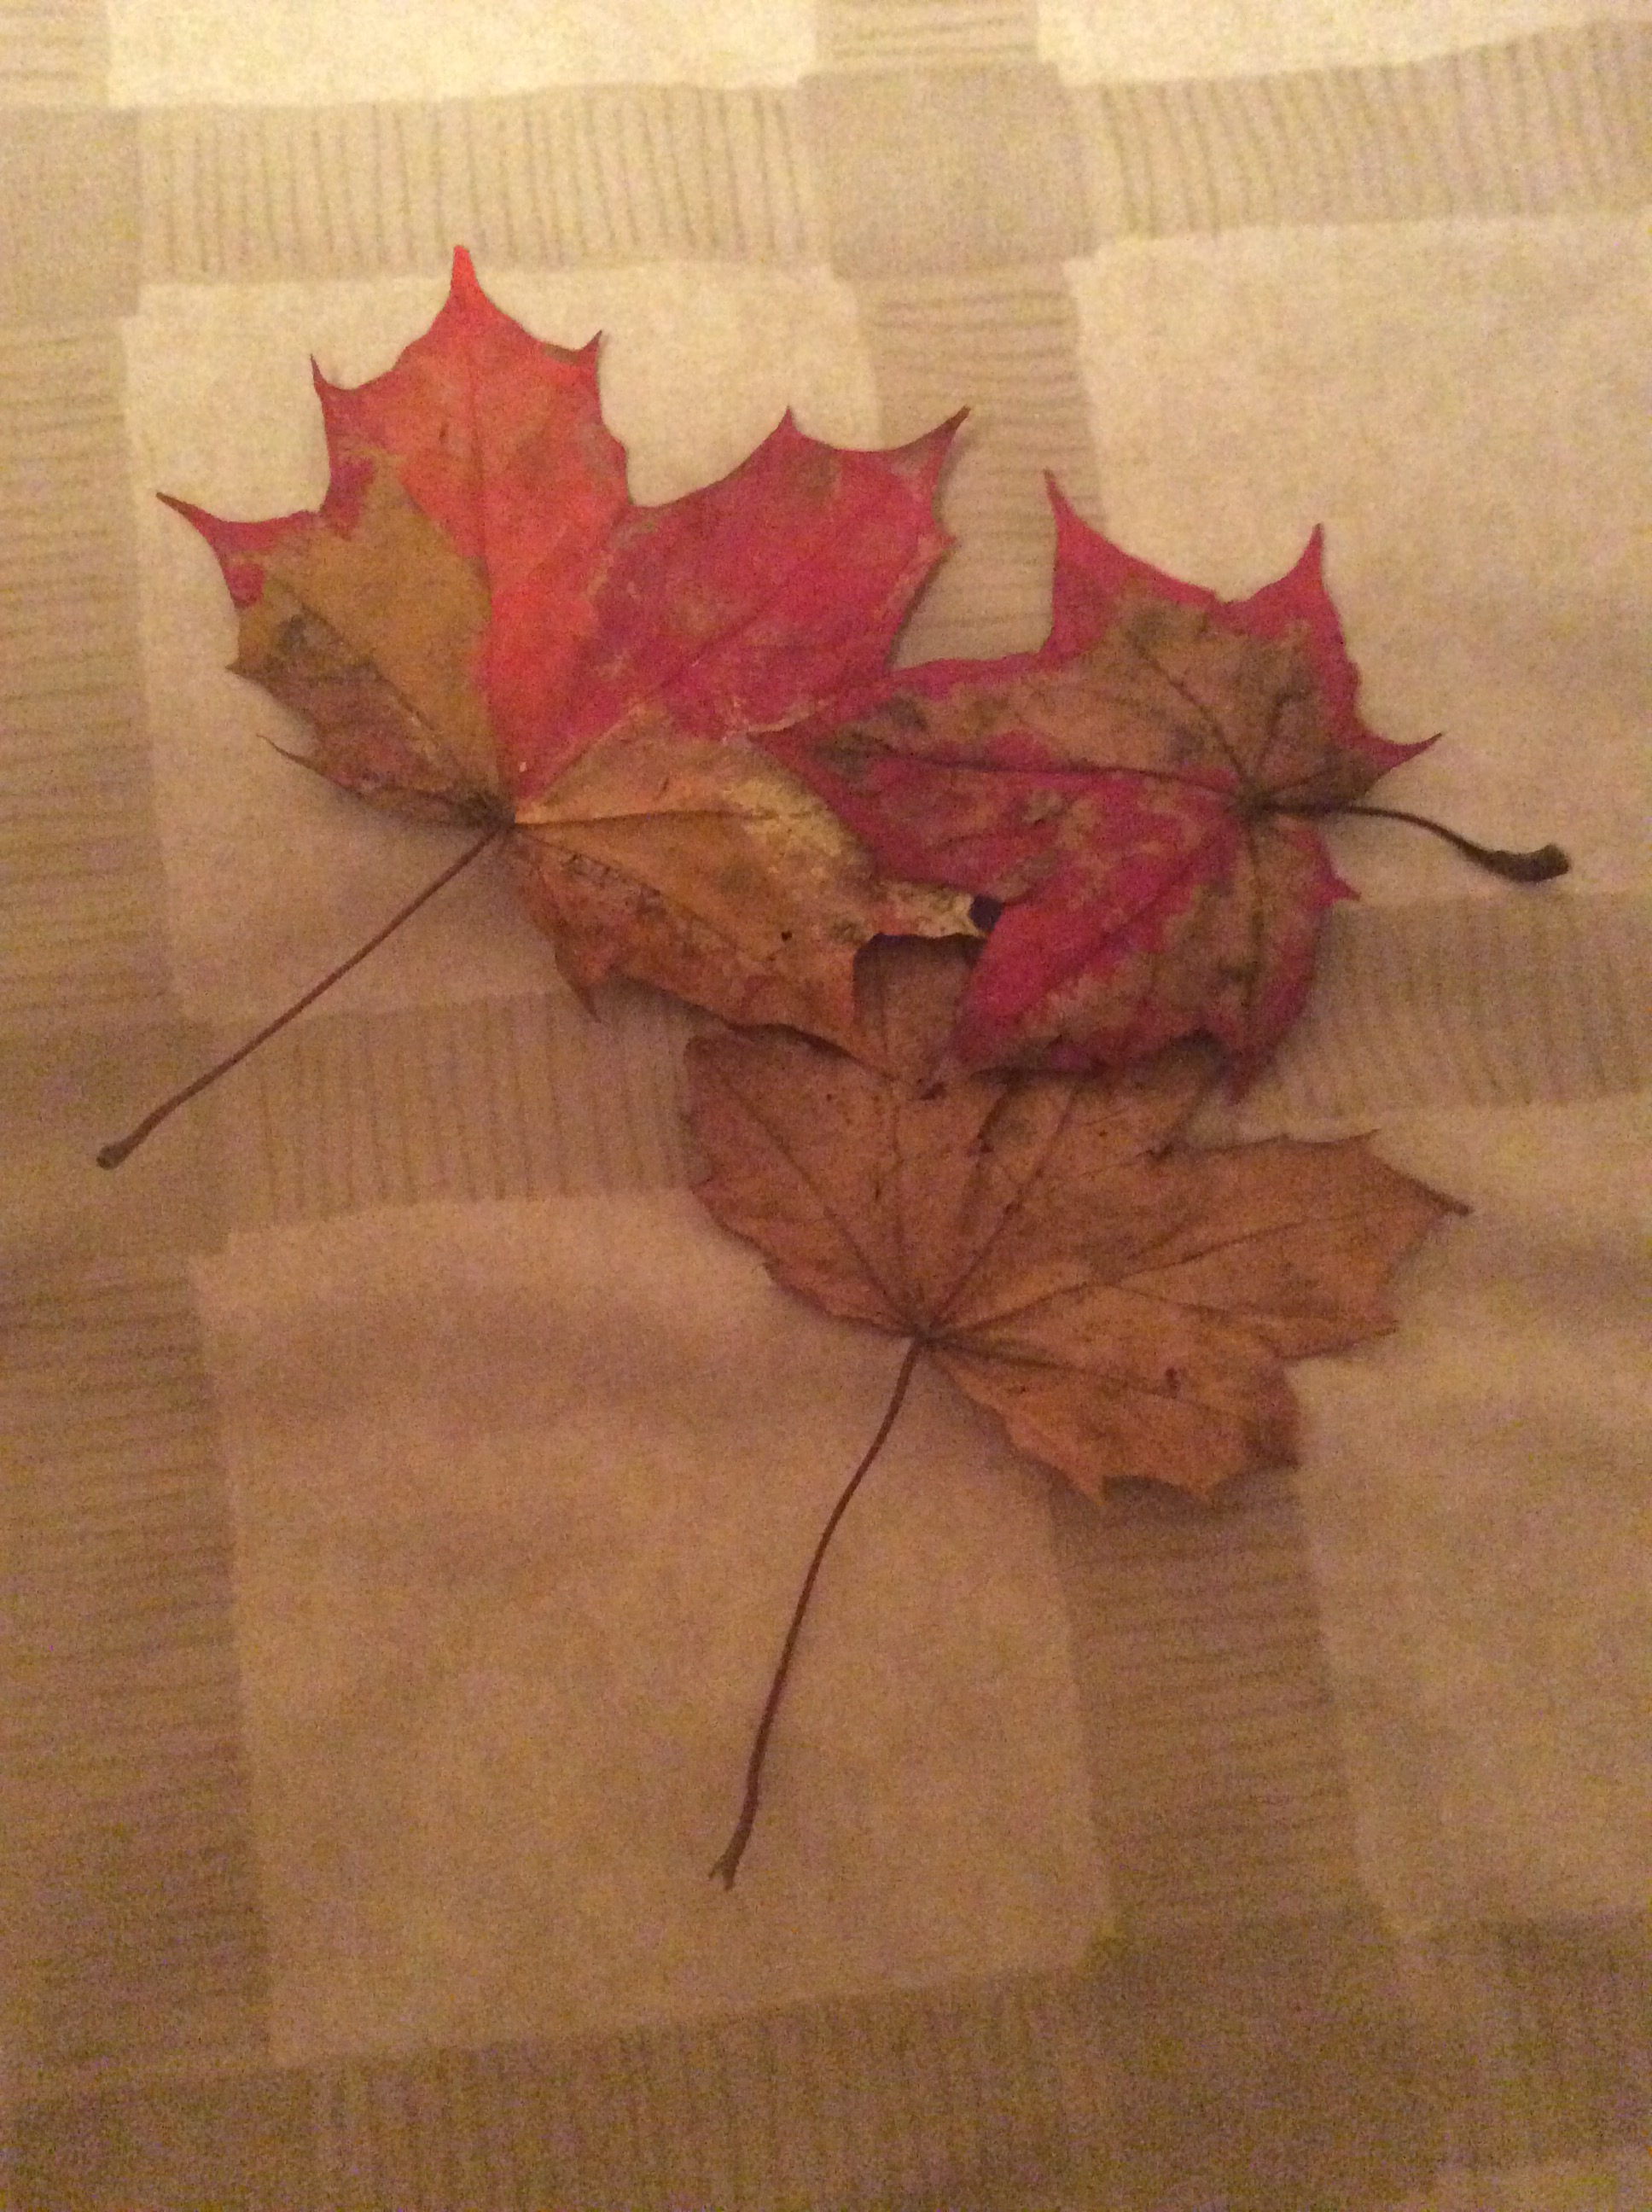 Three fallen leaves, recovered from the local park - and used in Artwork!